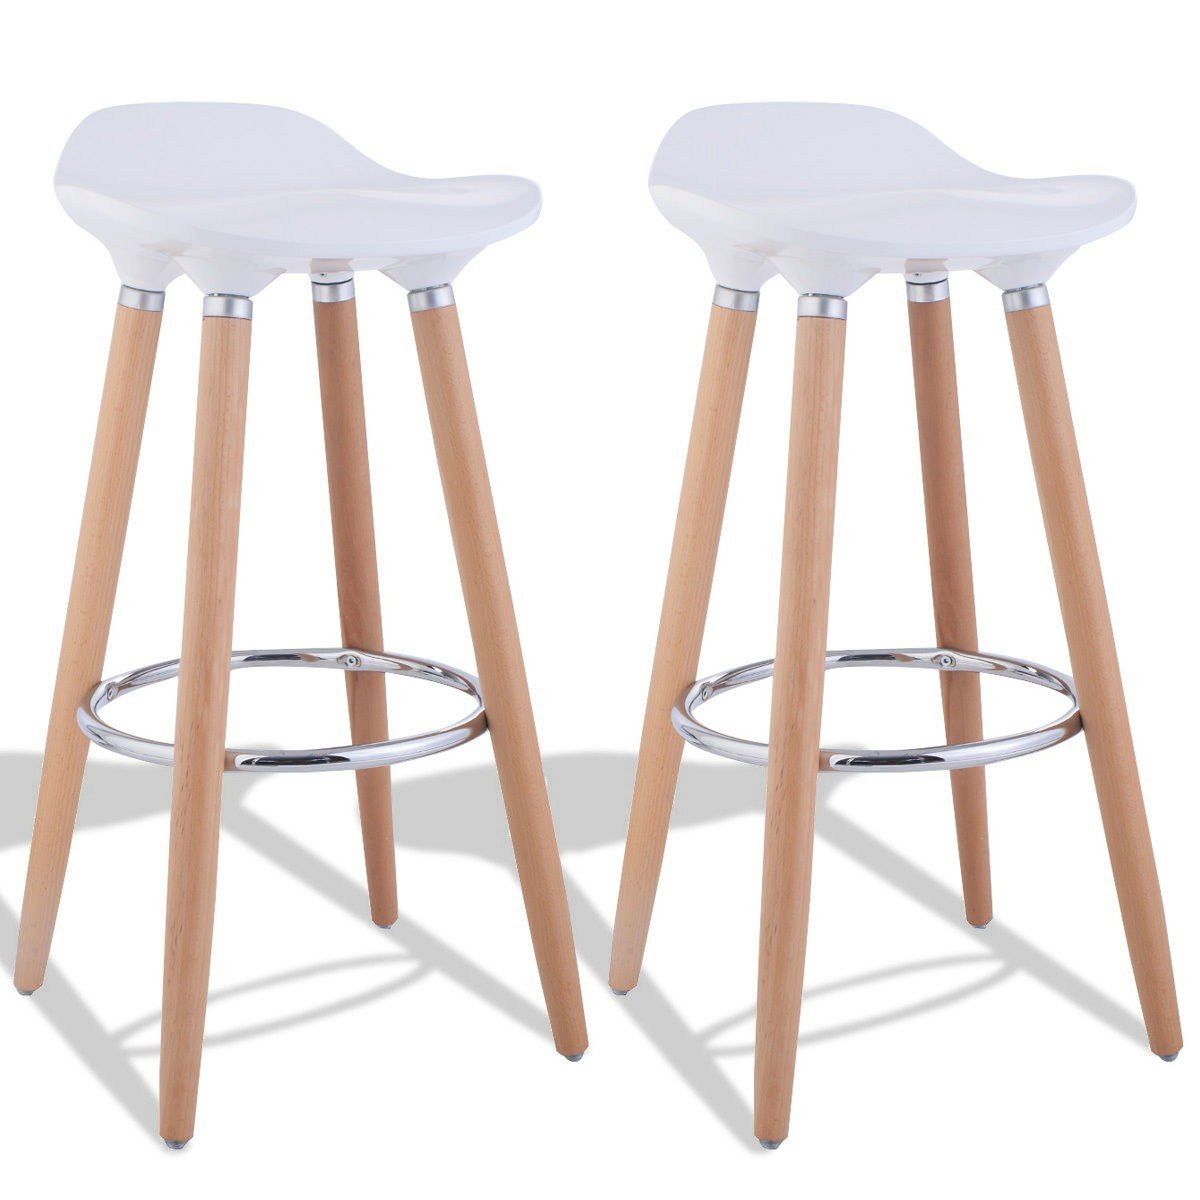 LordBee New Modern Unique Simple Style High Strong Quality Wood ABS Material Set of 2 ABS Bar Stool with Wooden Legs White seat and Wood Legs by LordBee